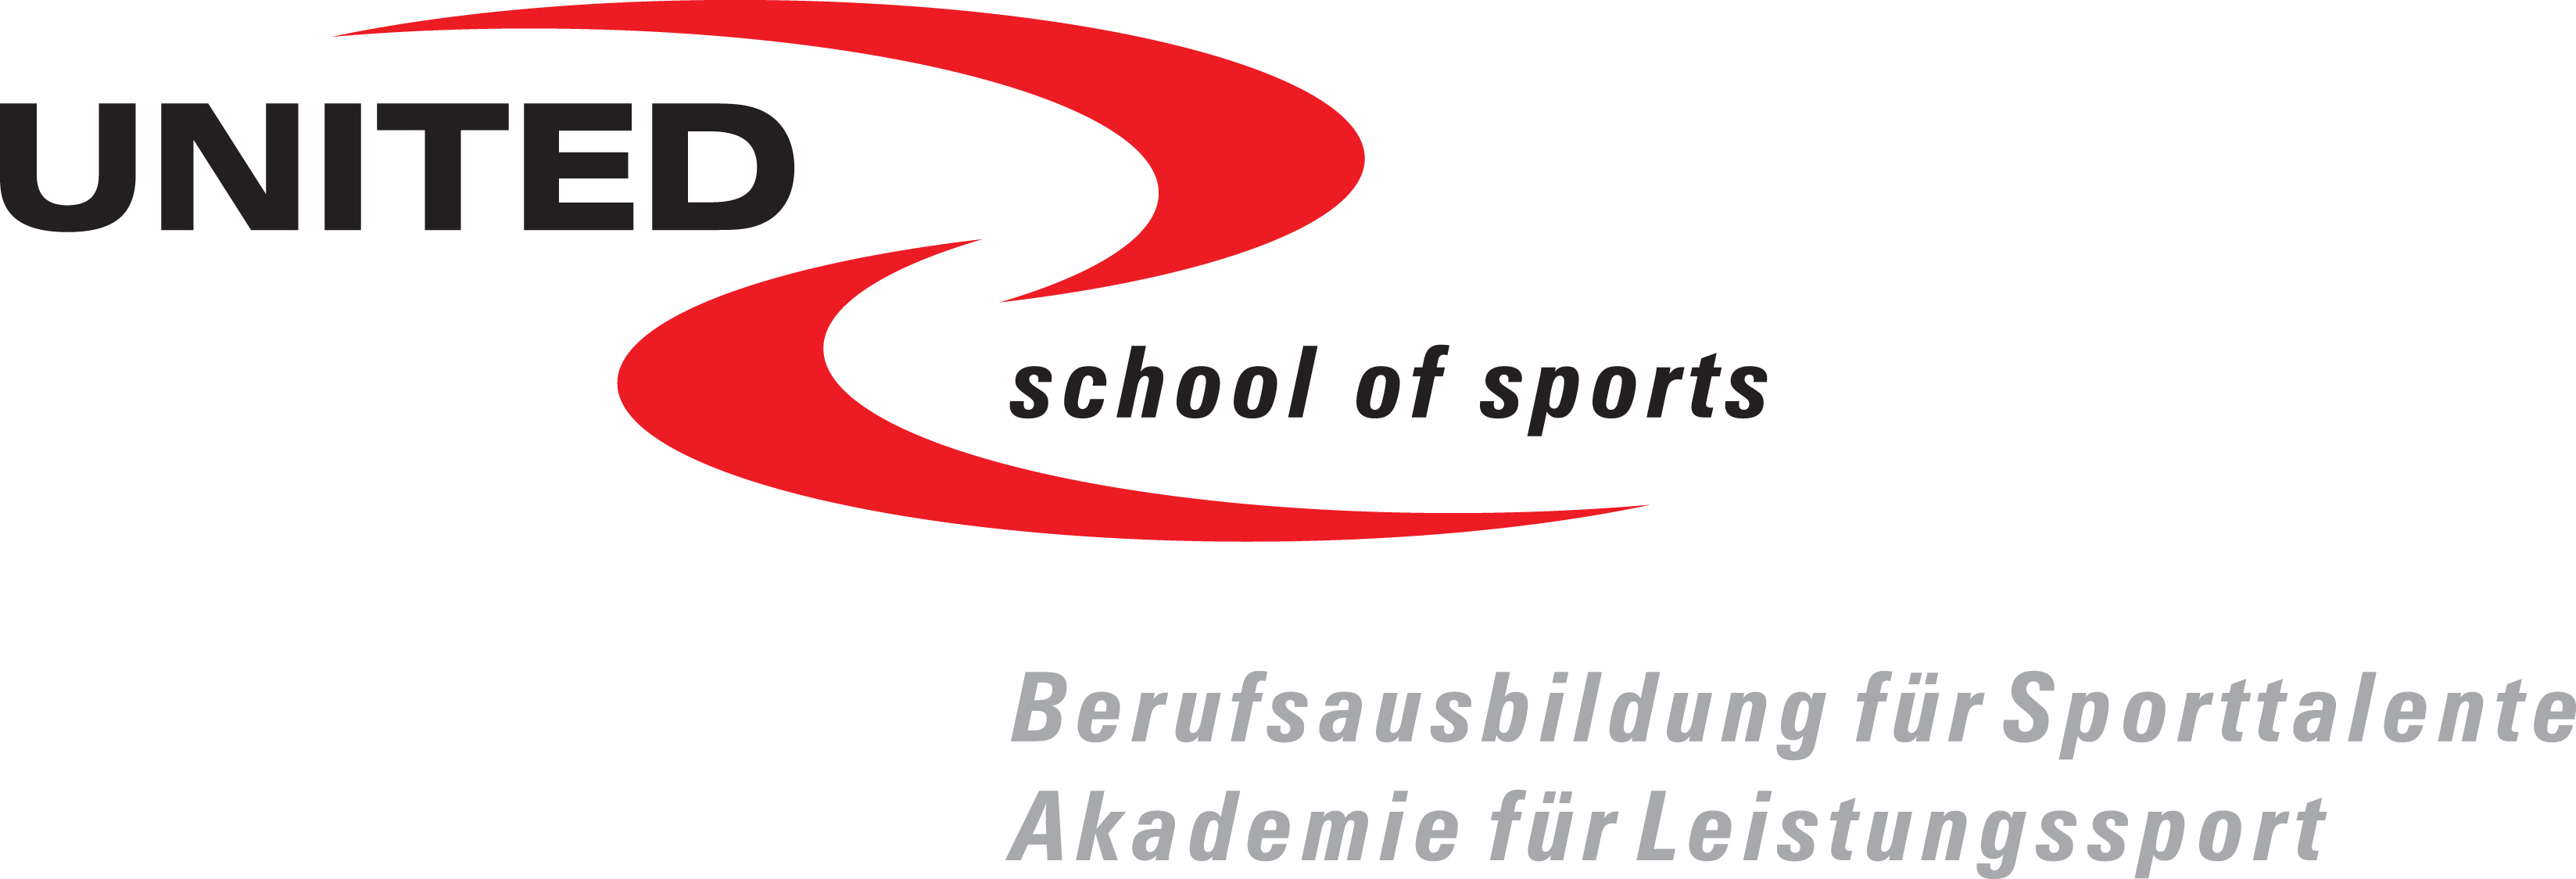 United School of Sports